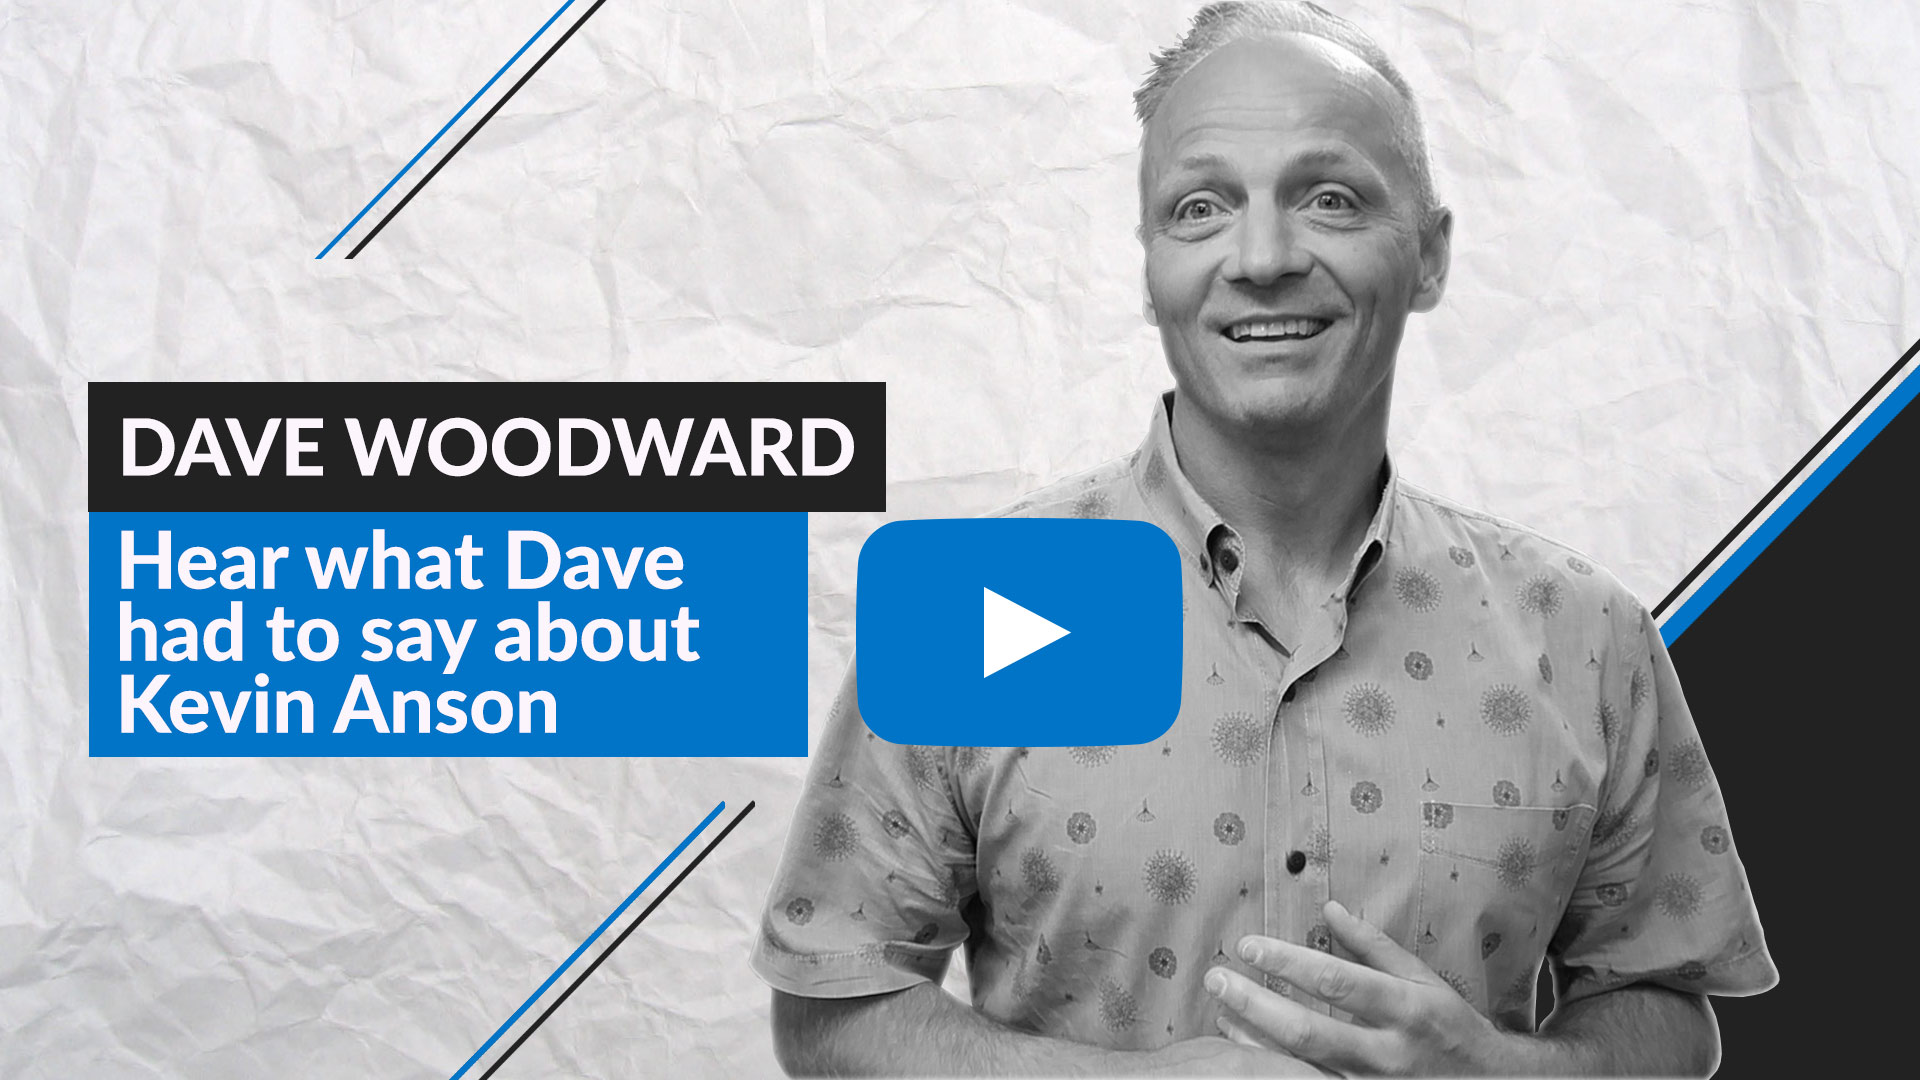 Dave Woodward results from Kevin Anson